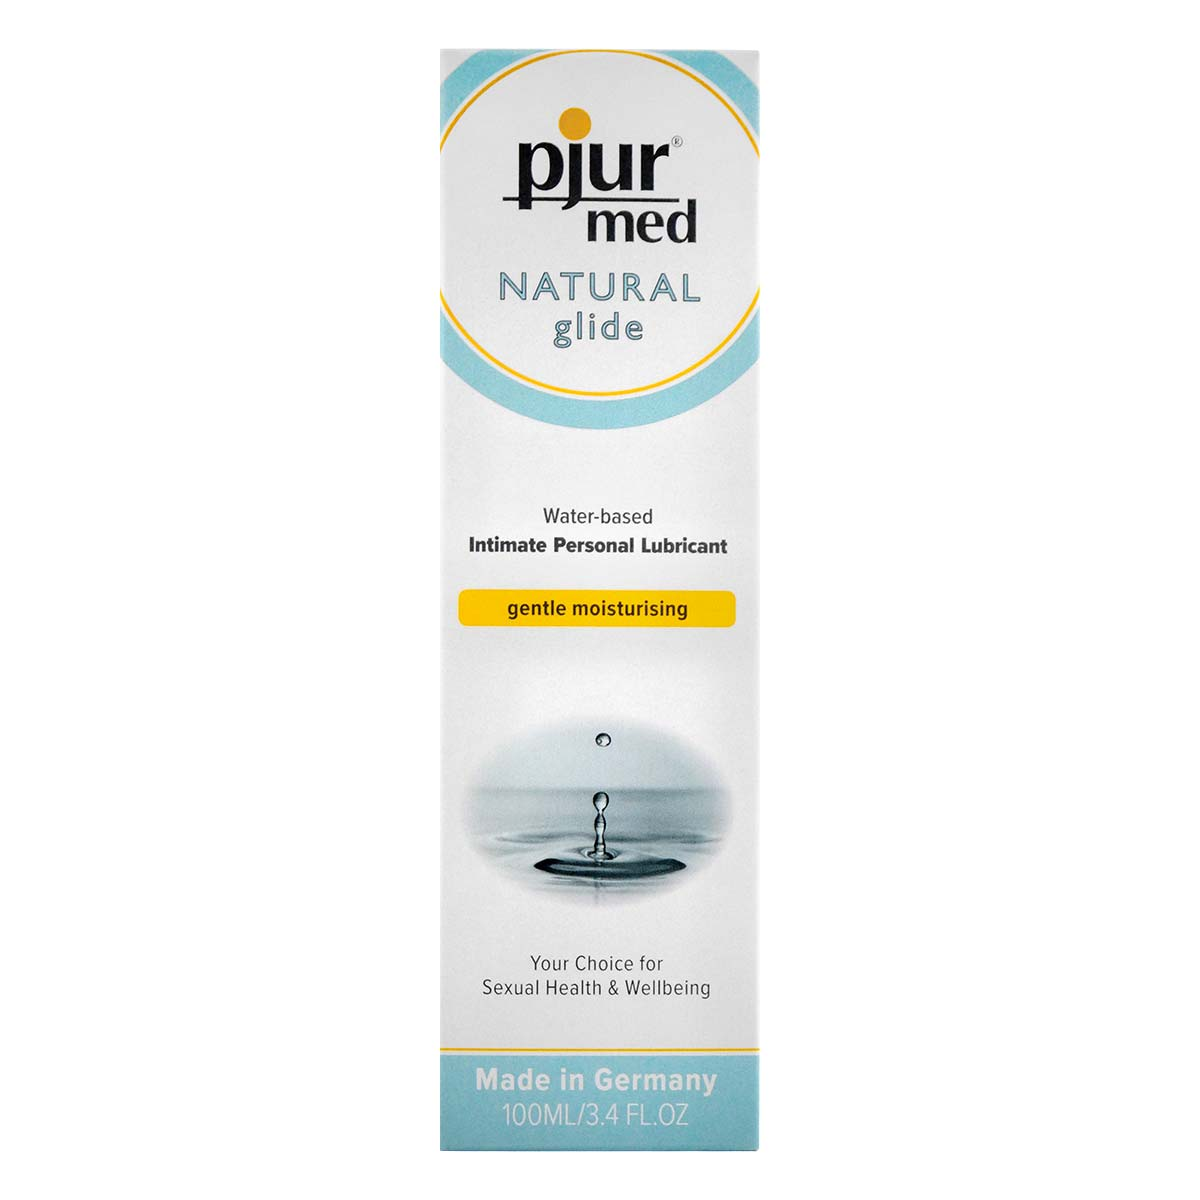 pjur med NATURAL glide 100ml Water-based Lubricant